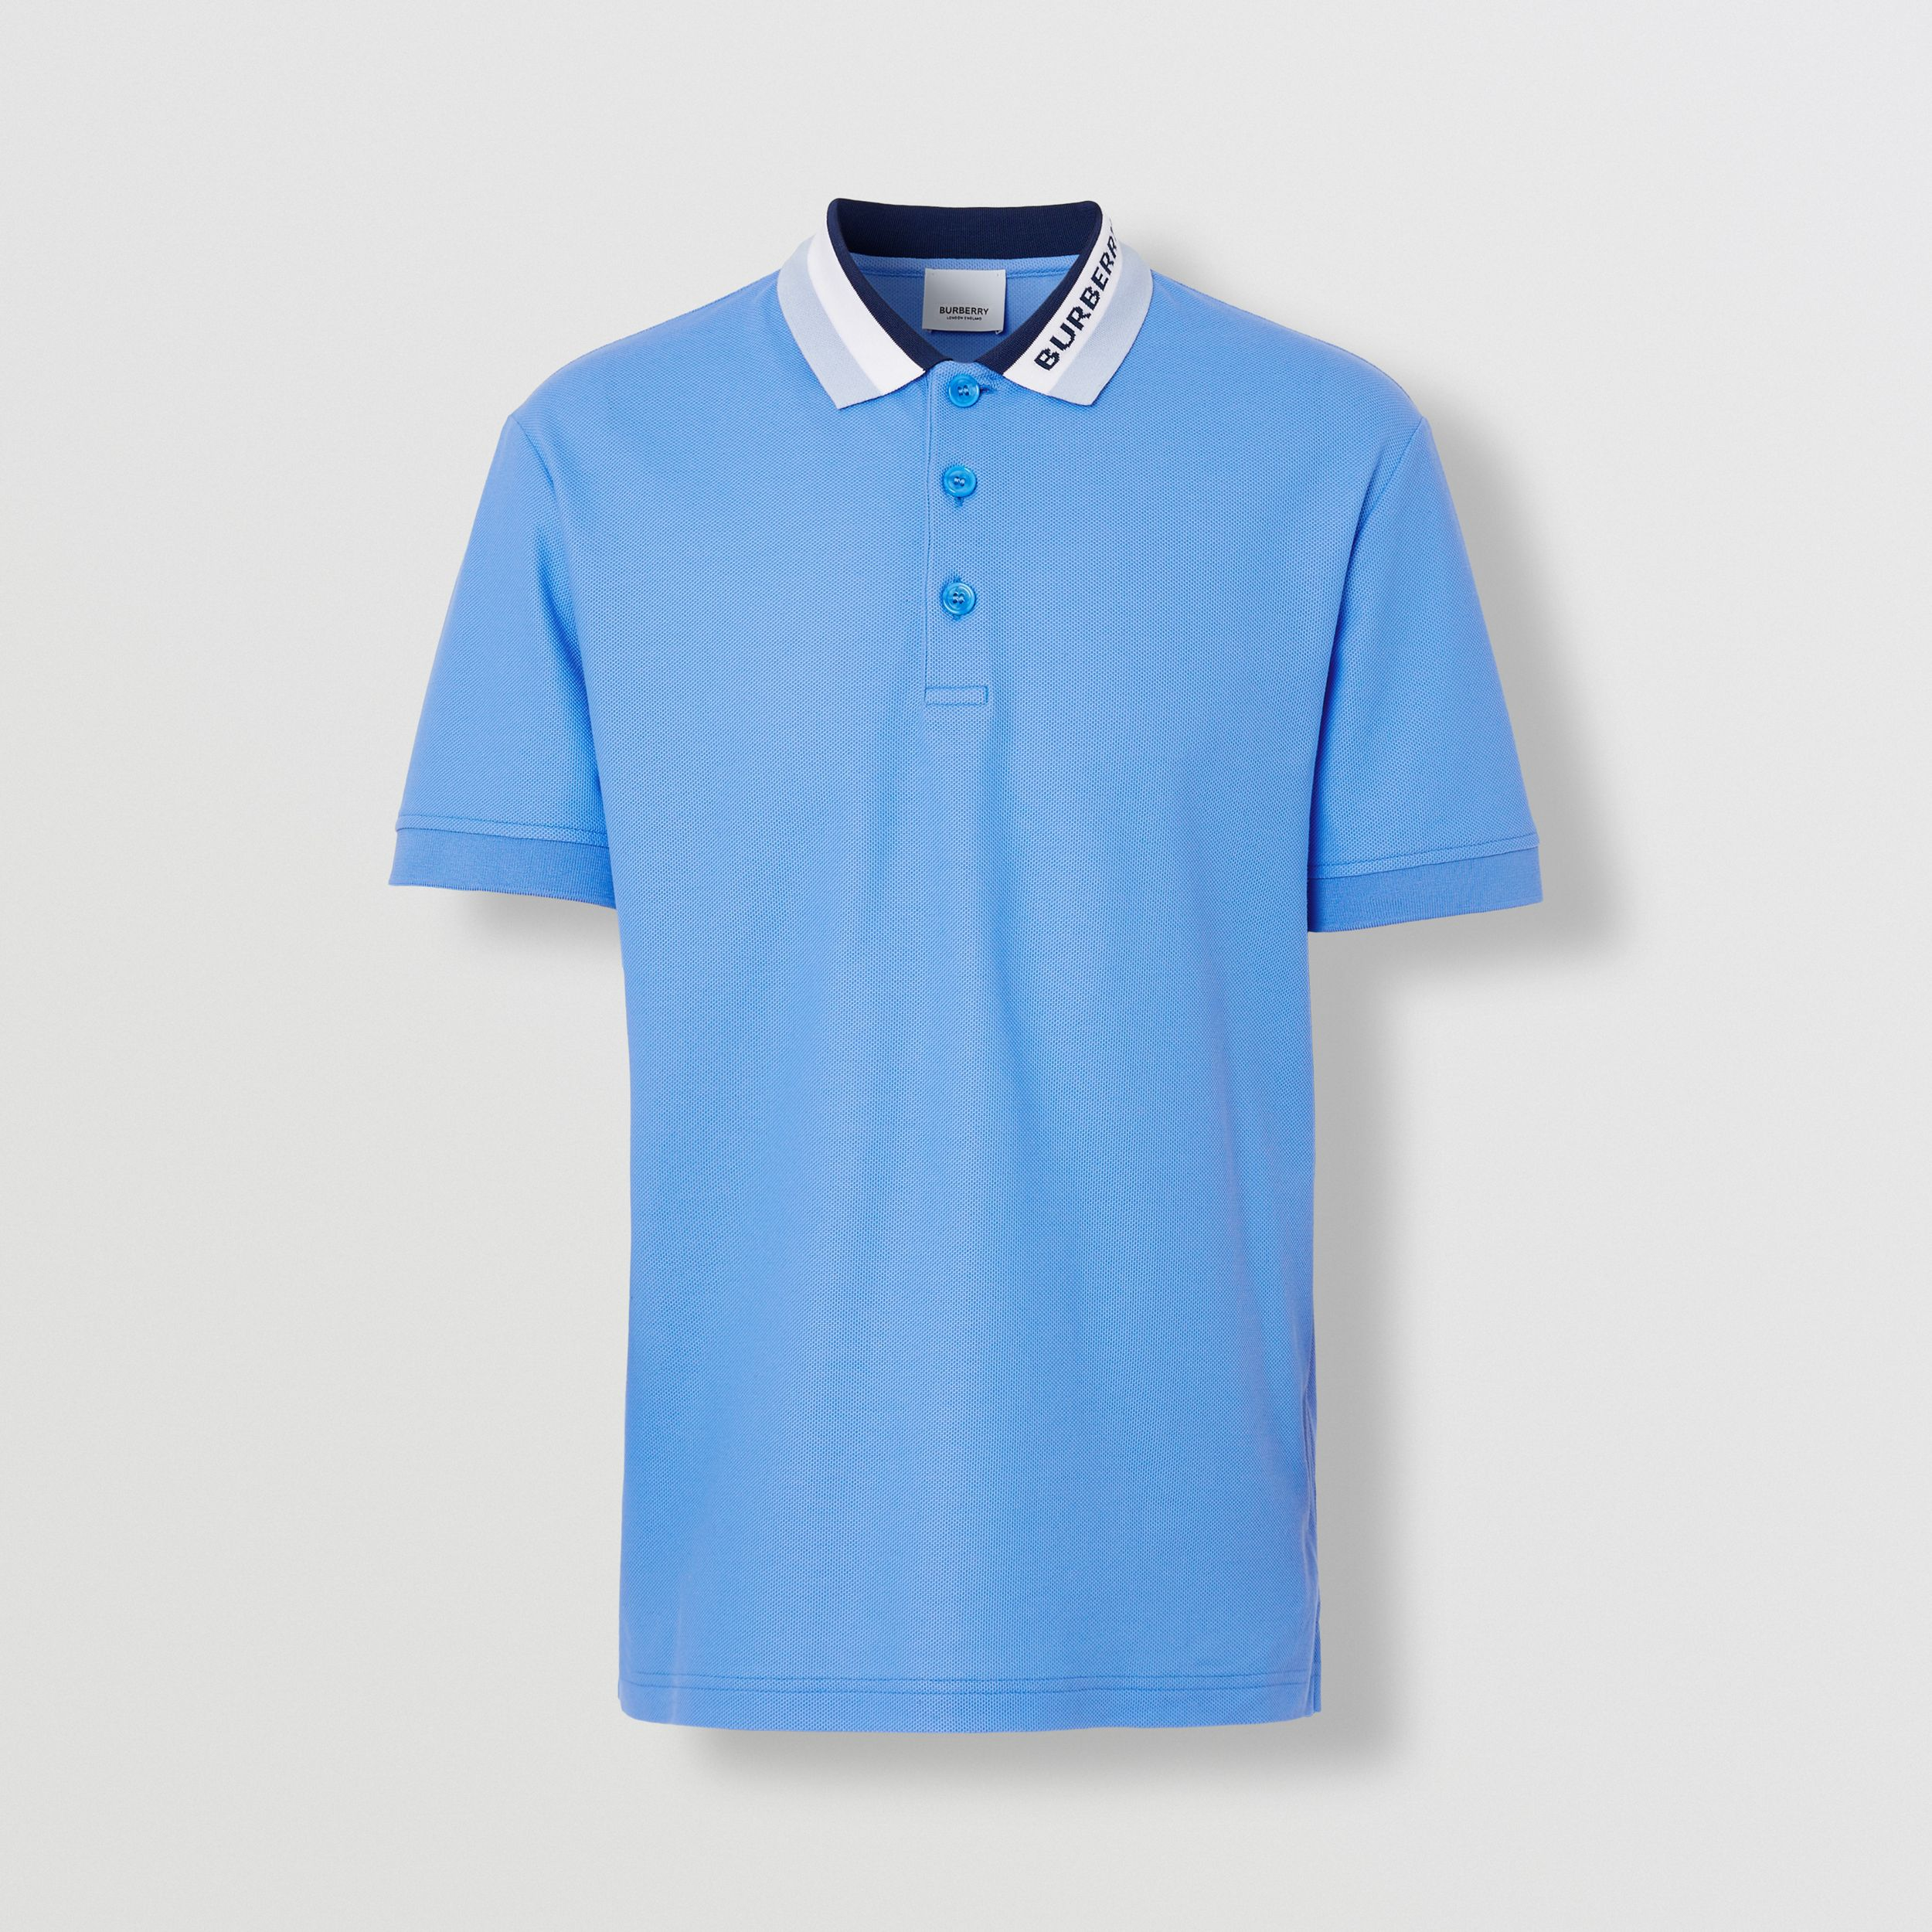 Logo Detail Cotton Piqué Polo Shirt in Vivid Cobalt - Men | Burberry - 4